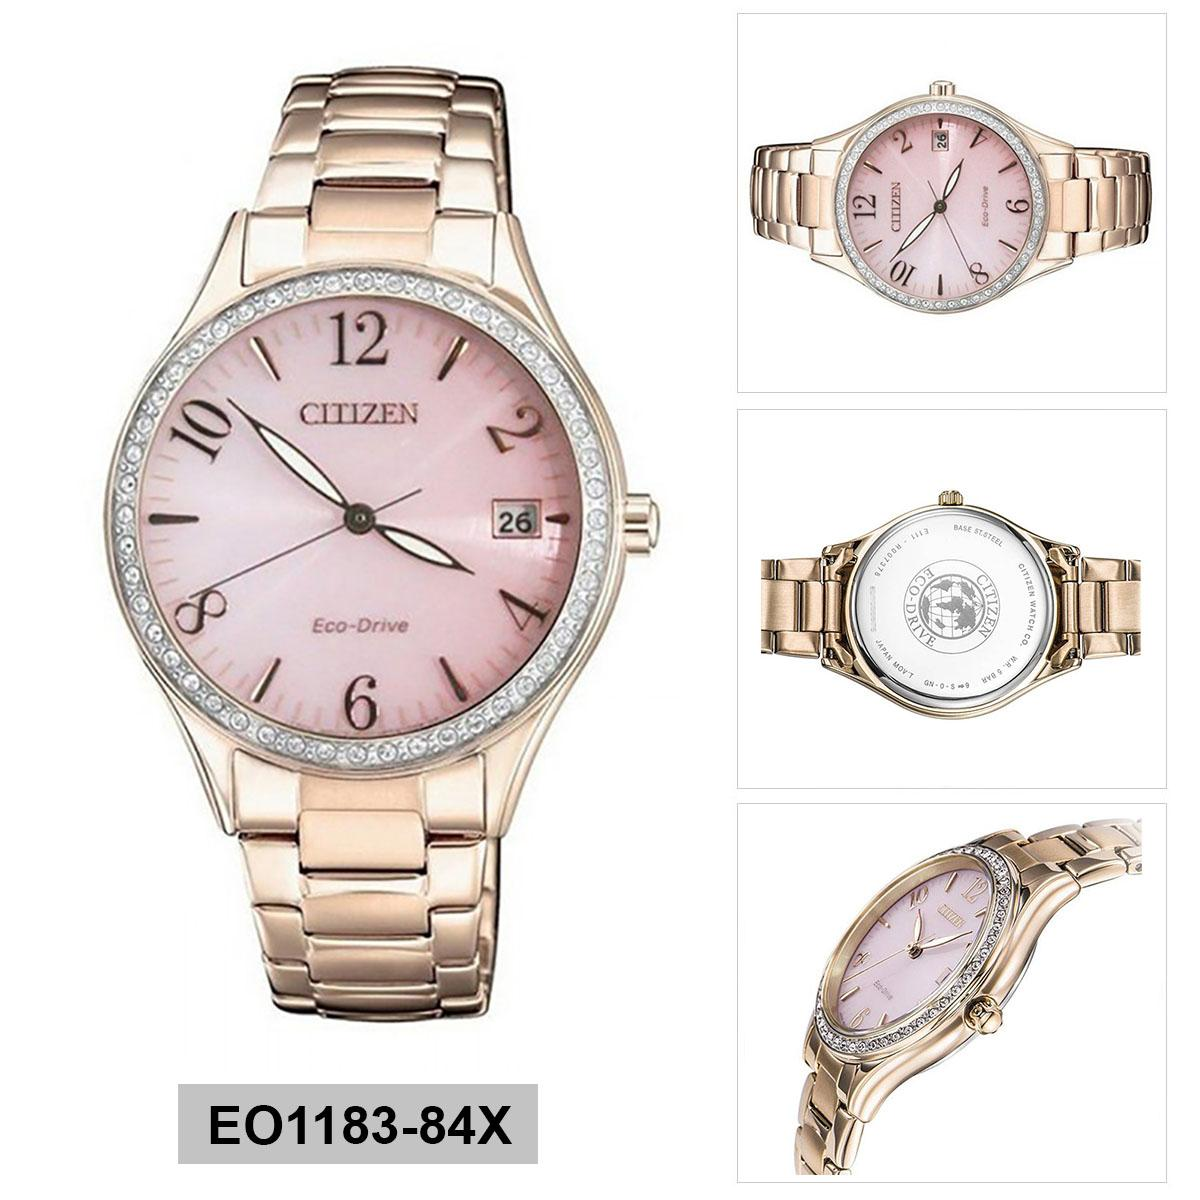 Citizen Eco-Drive Rose Gold Stainless-Steel Case Stainless-Steel Bracelet Ladies EO1183-84X Malaysia